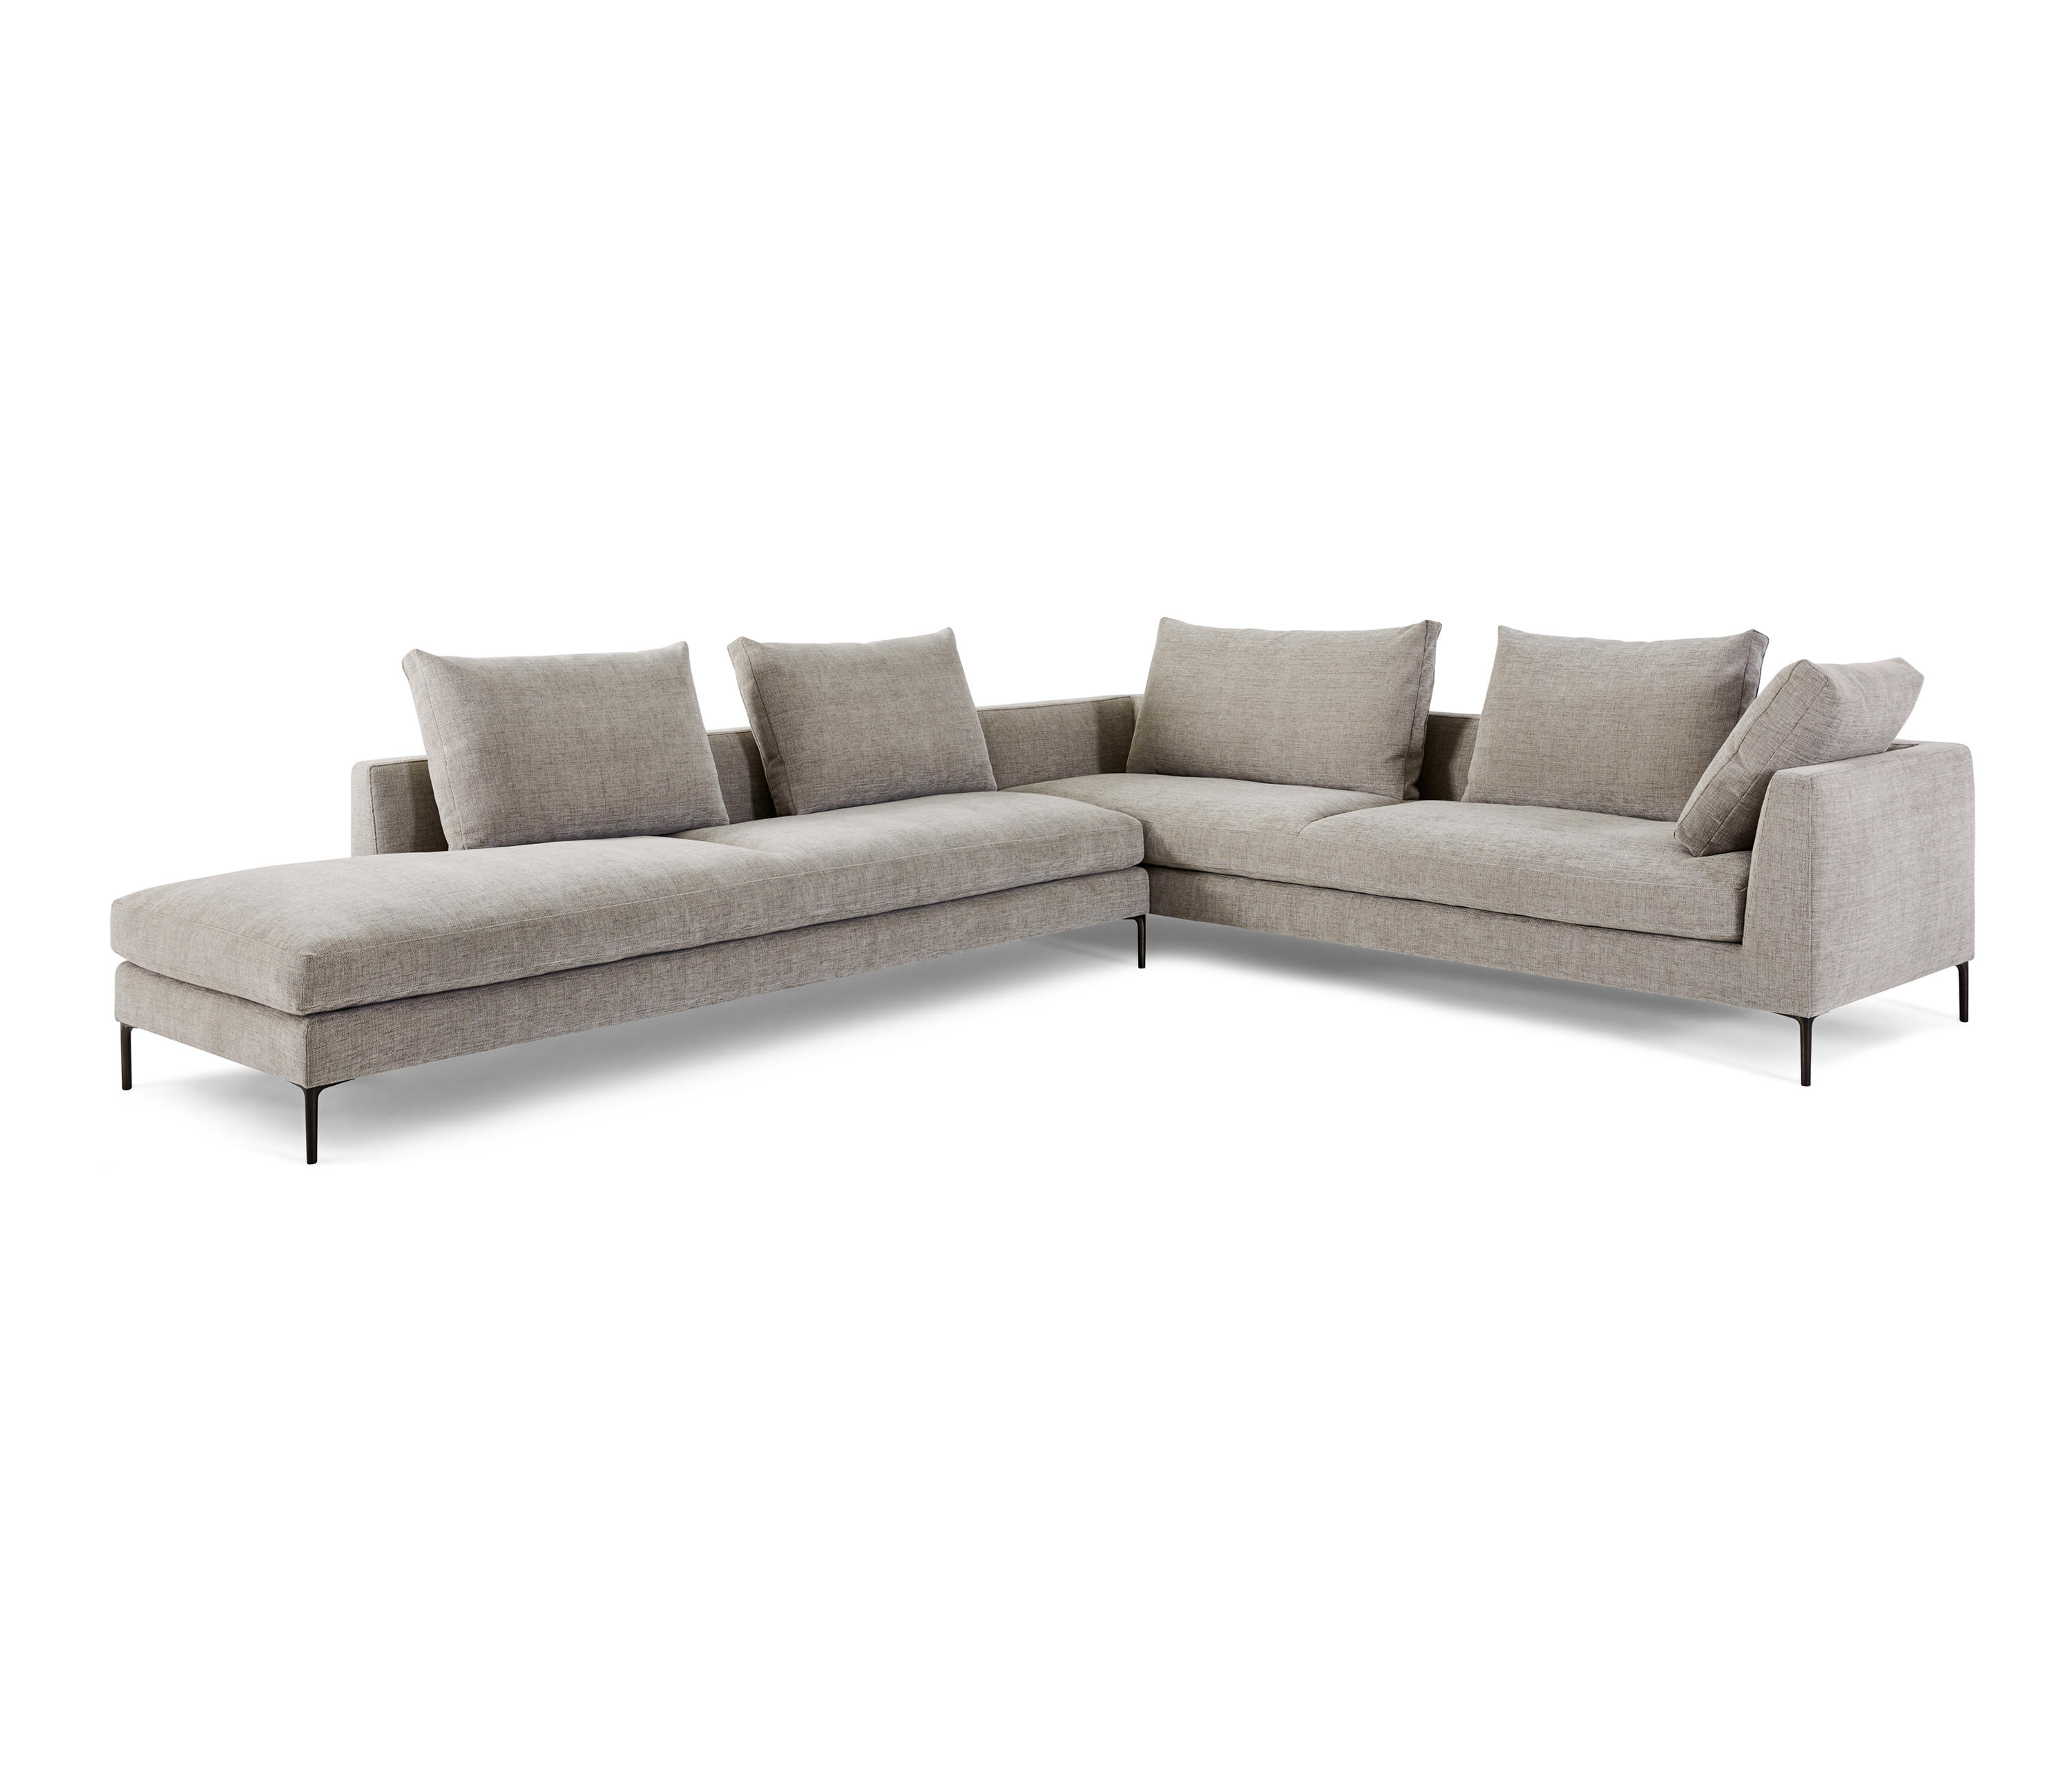 Daley Modular Sofa by Niels Bendtsen for Montis